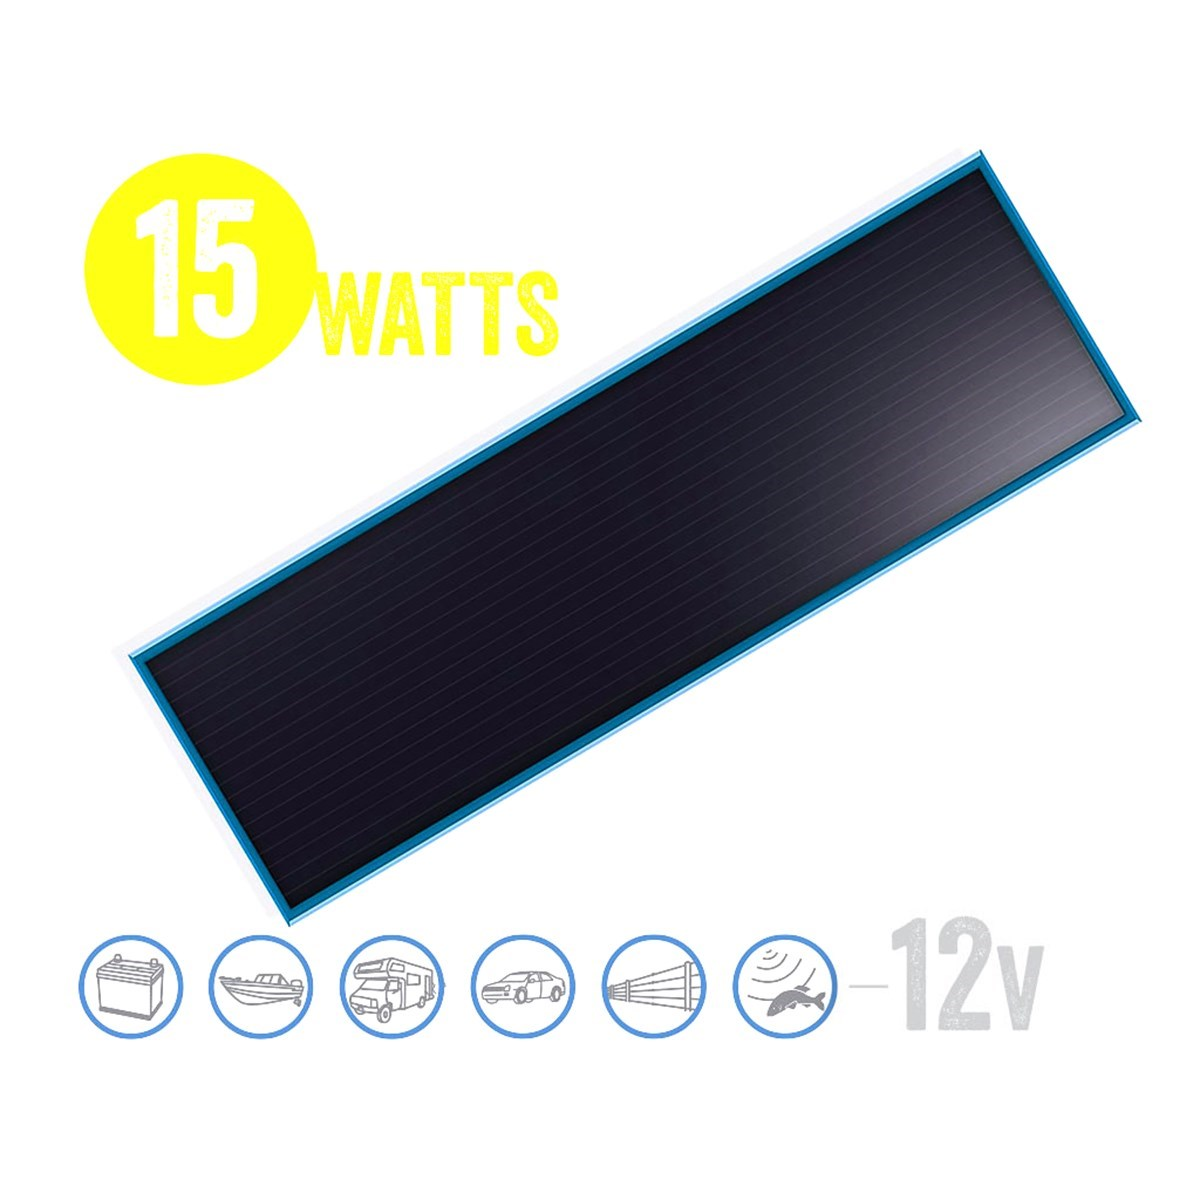 Brunton Solarflat Solar Charger 15 Watts Save 53